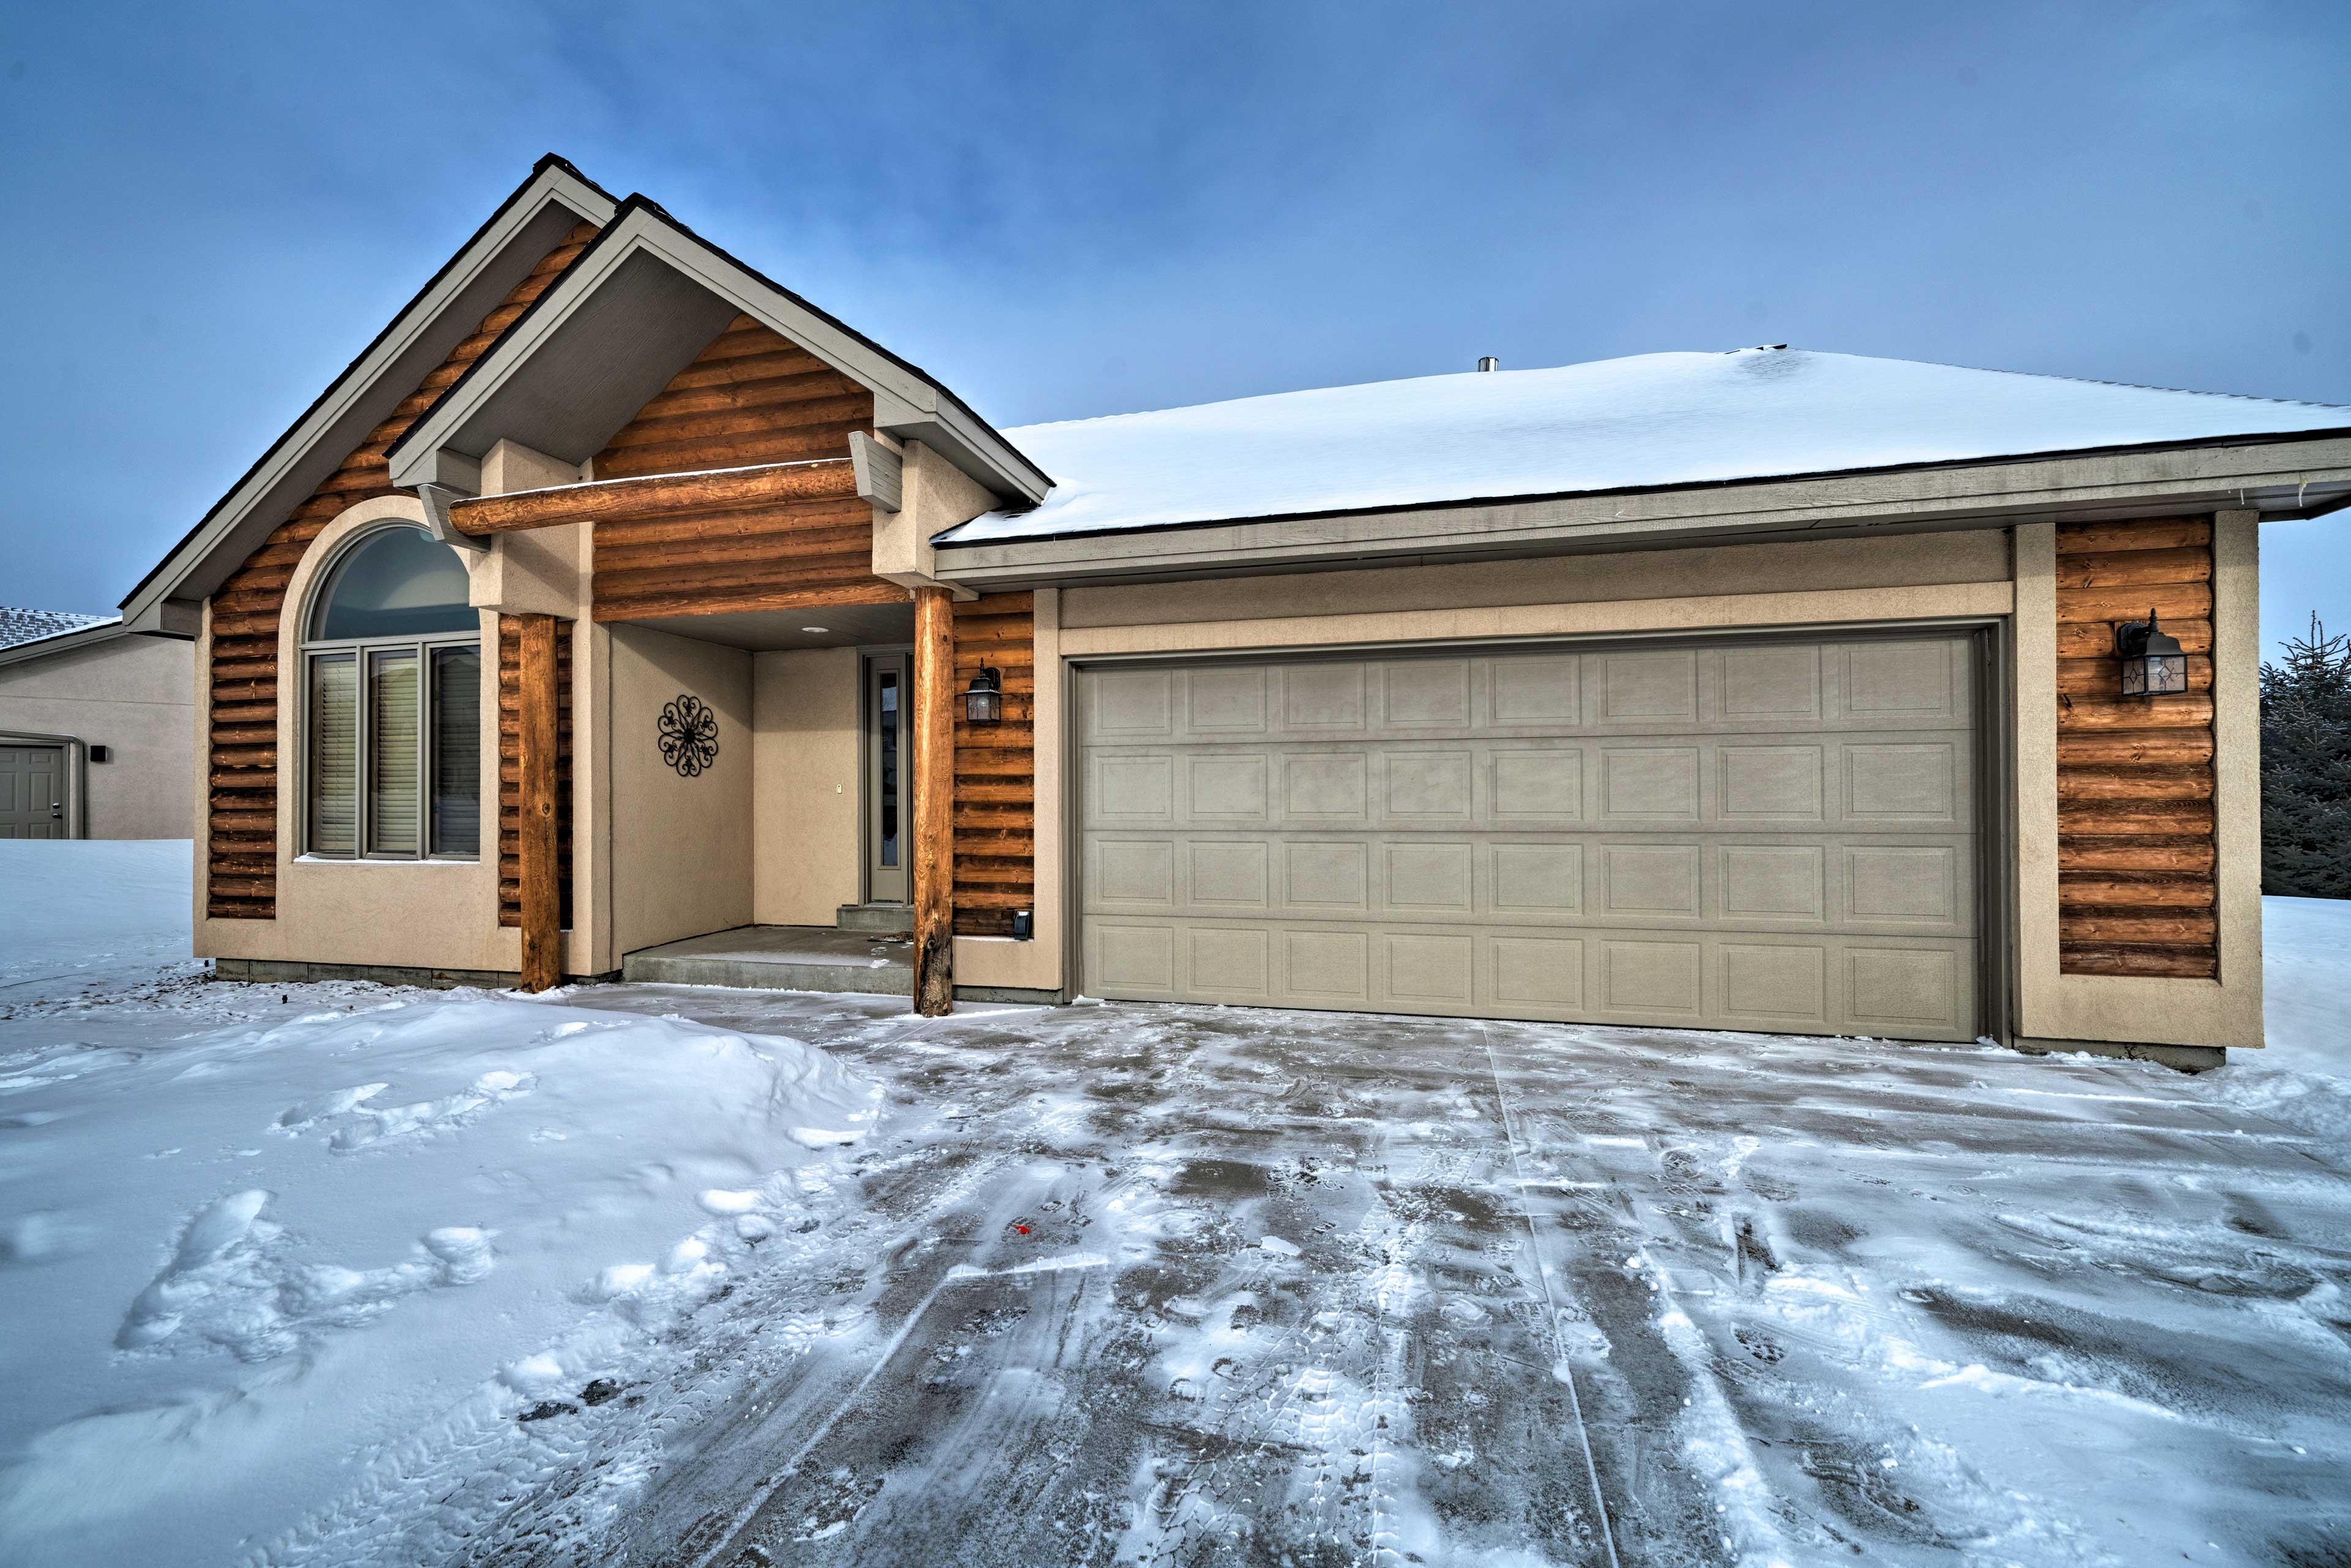 The house offers 2 bedrooms, 2 bathrooms, and over 1,300 square feet!